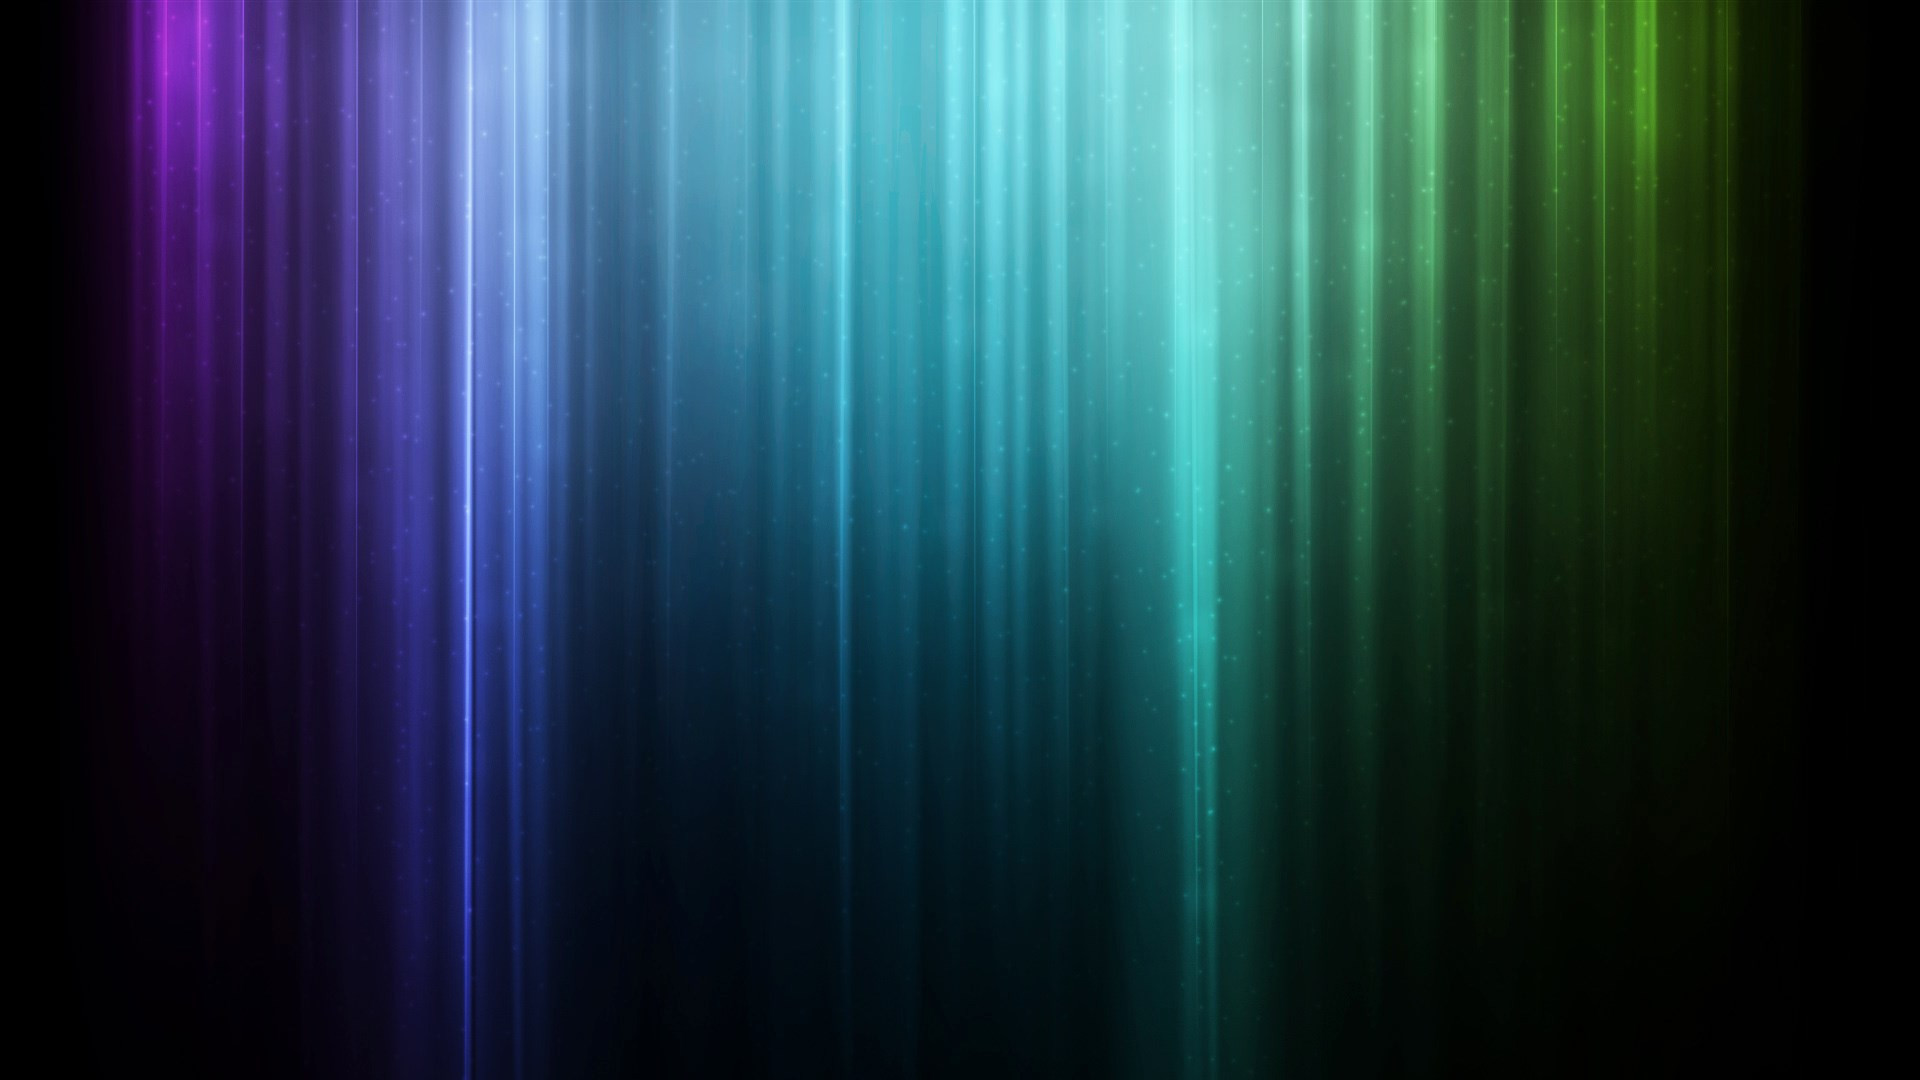 1920x1080-windows-colors-wallpaper-wpc900163